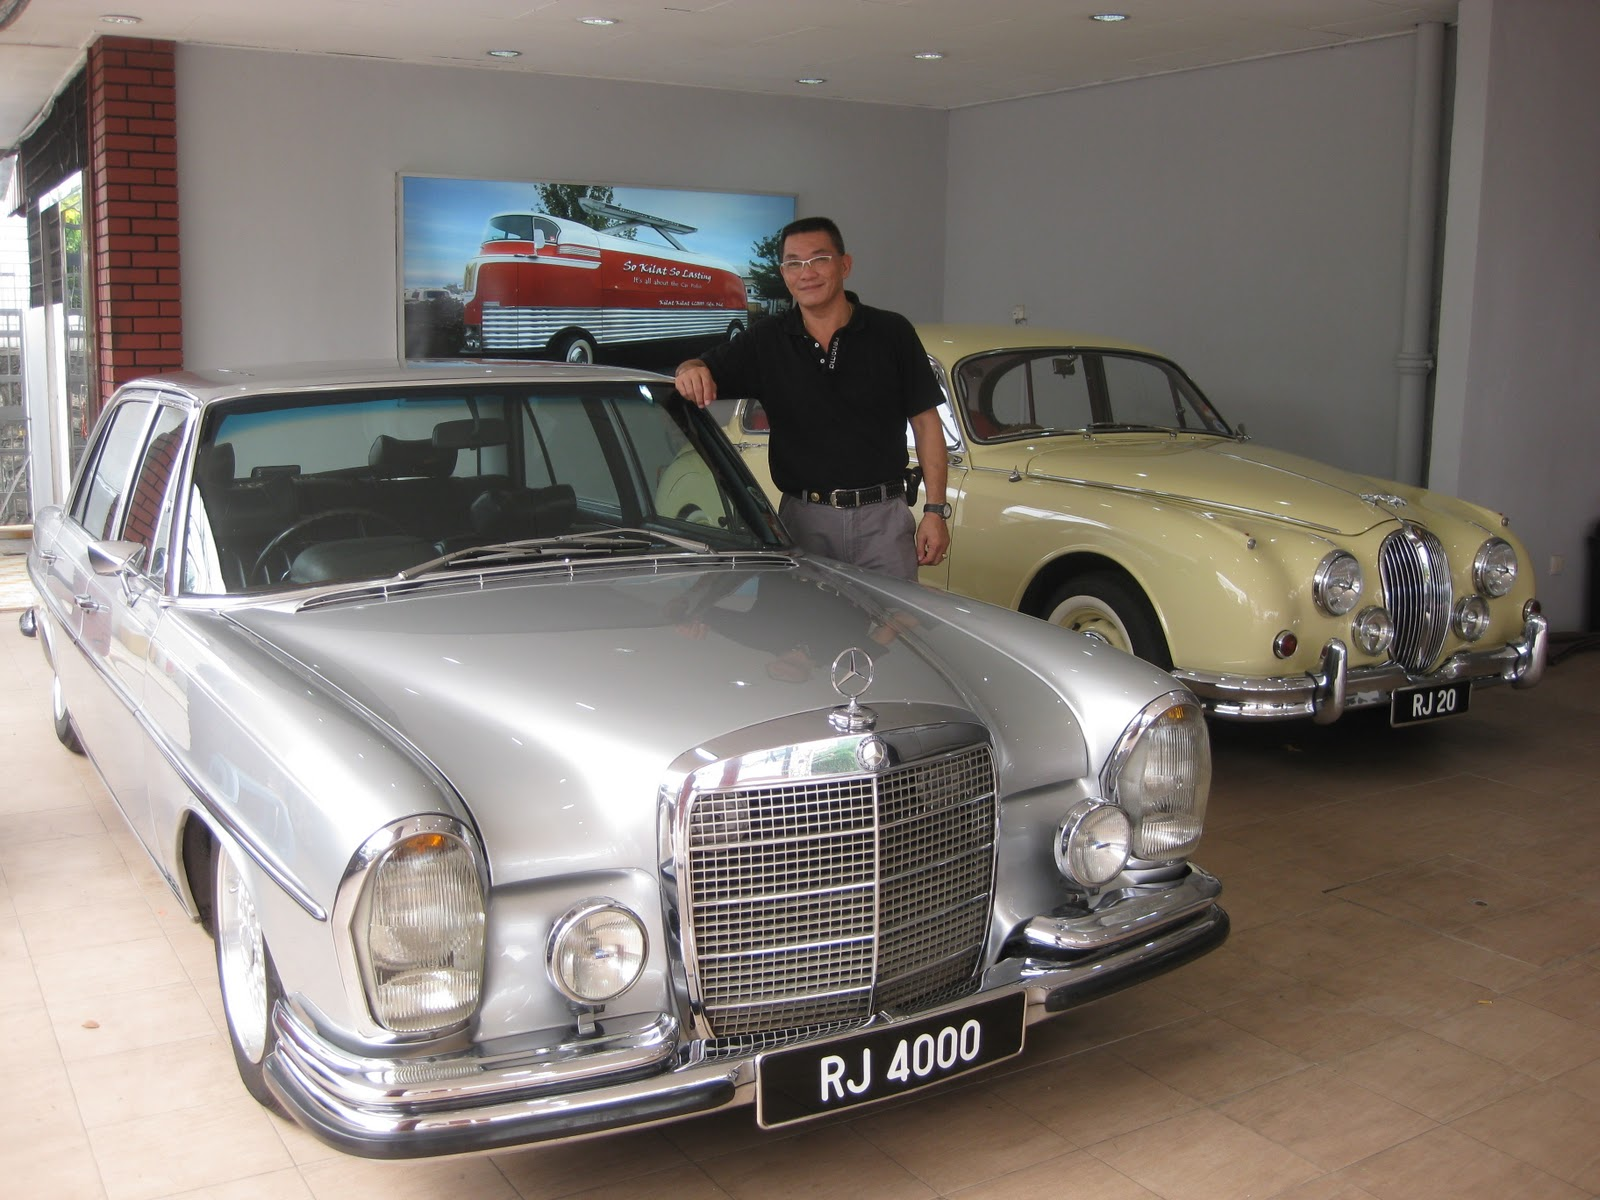 Peggy Loh ~ My Johor Stories: Cool classic cars